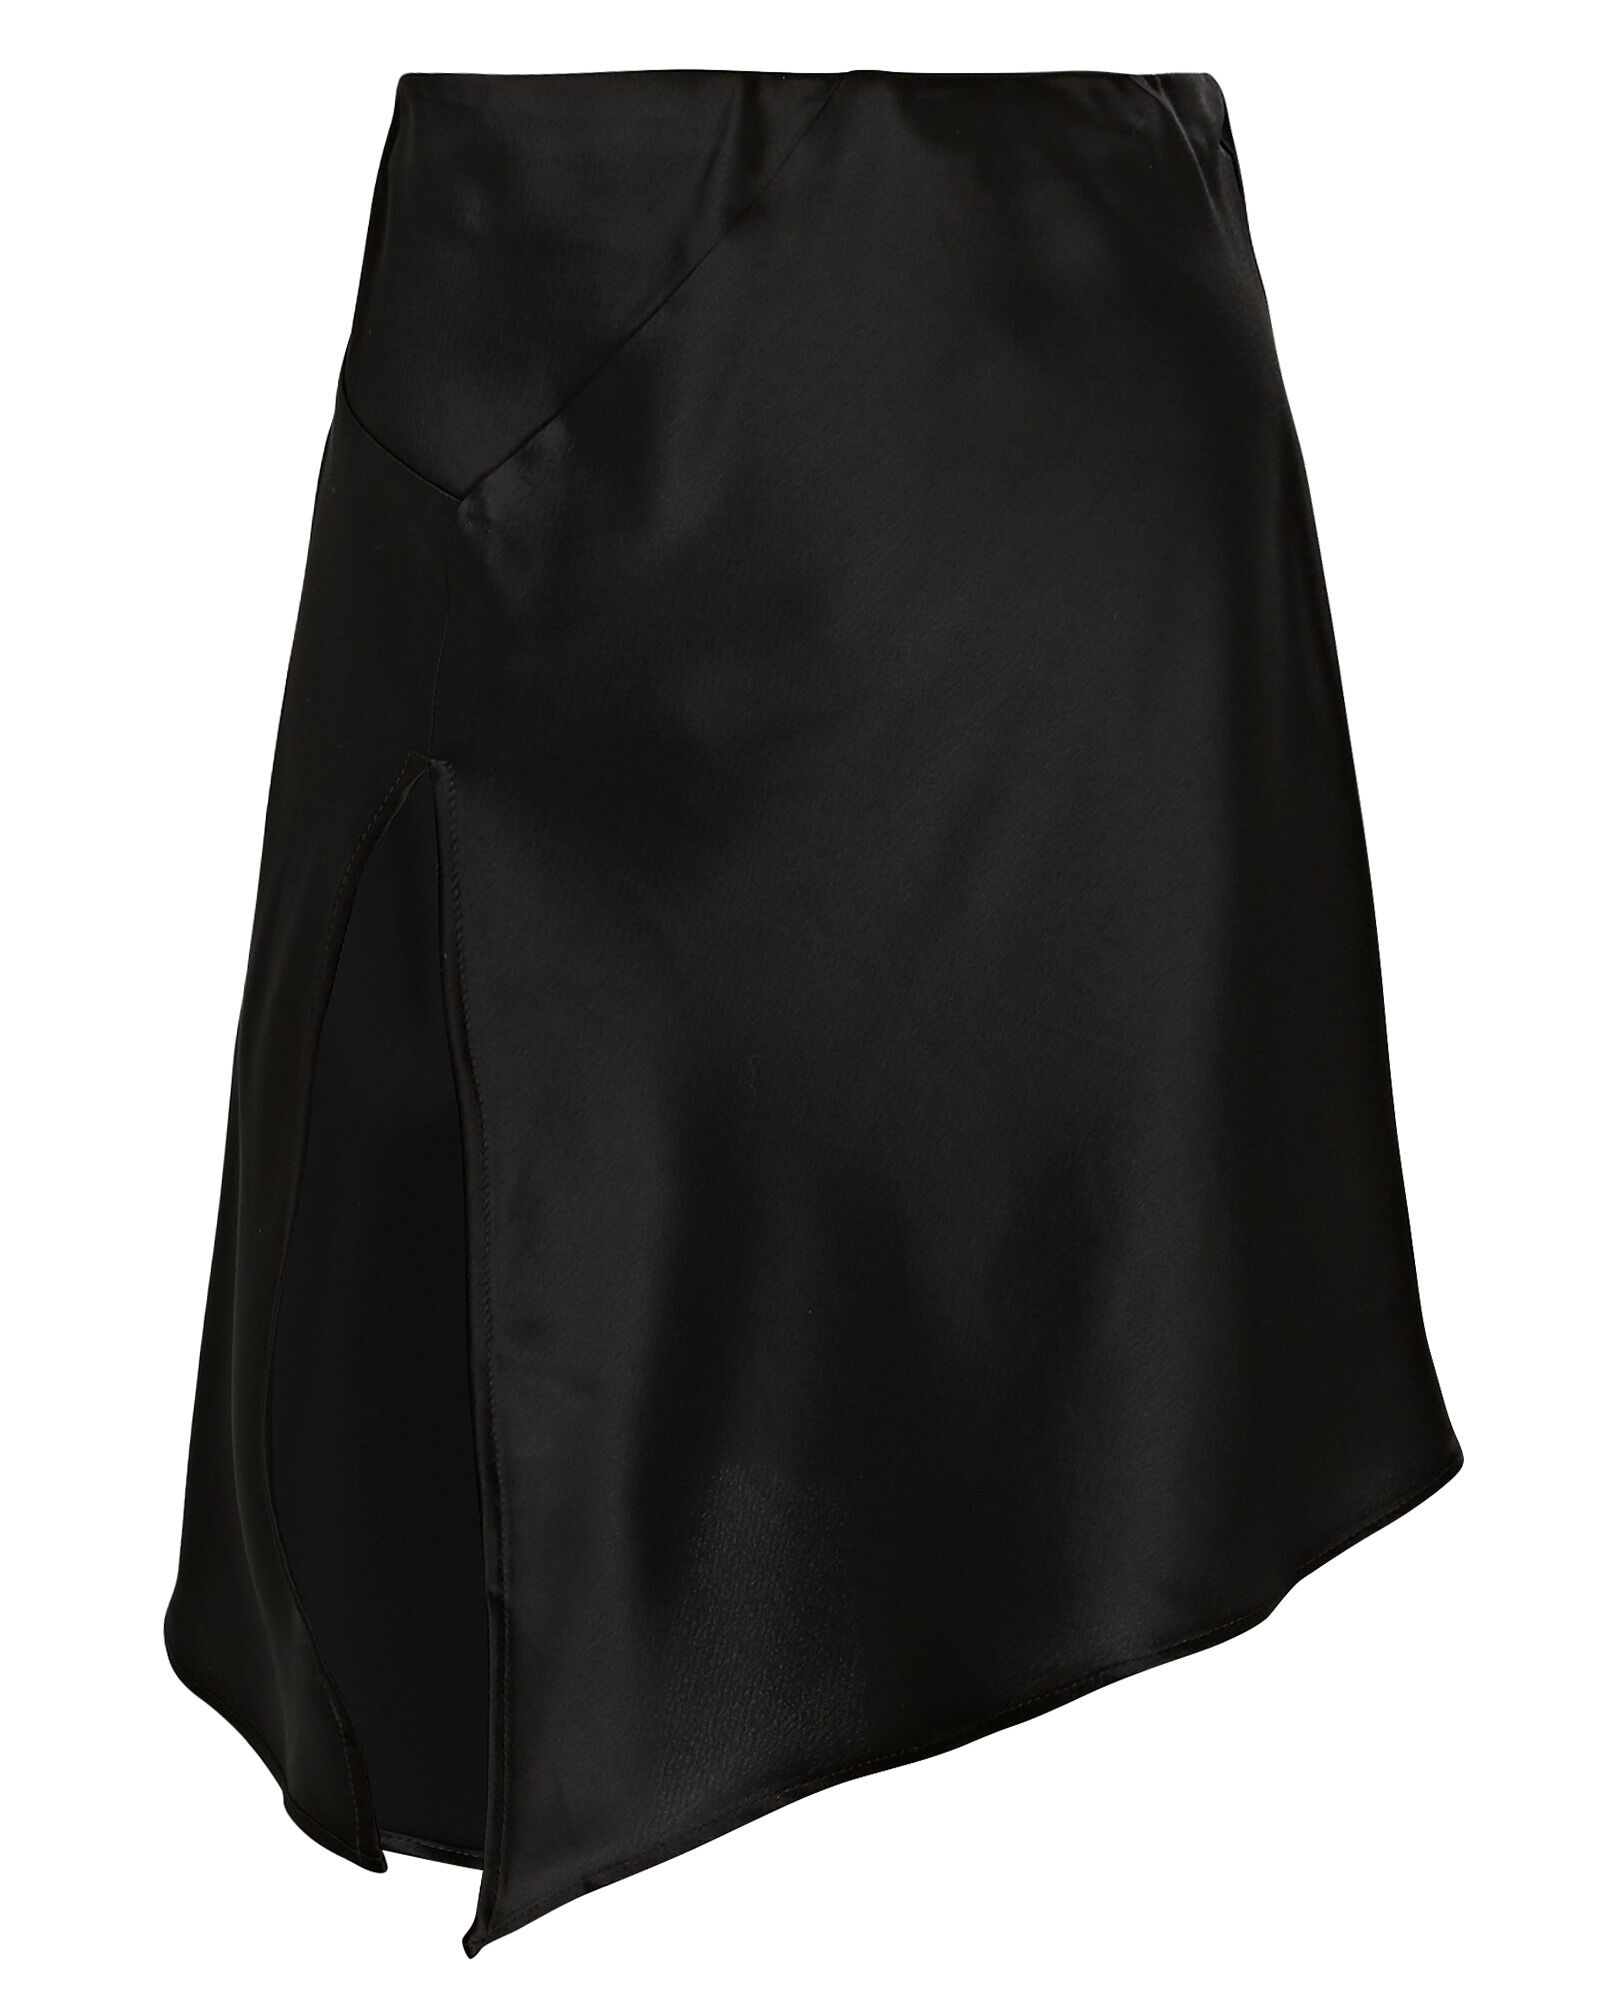 Cameron Slit Hem Mini Skirt, BLACK, hi-res